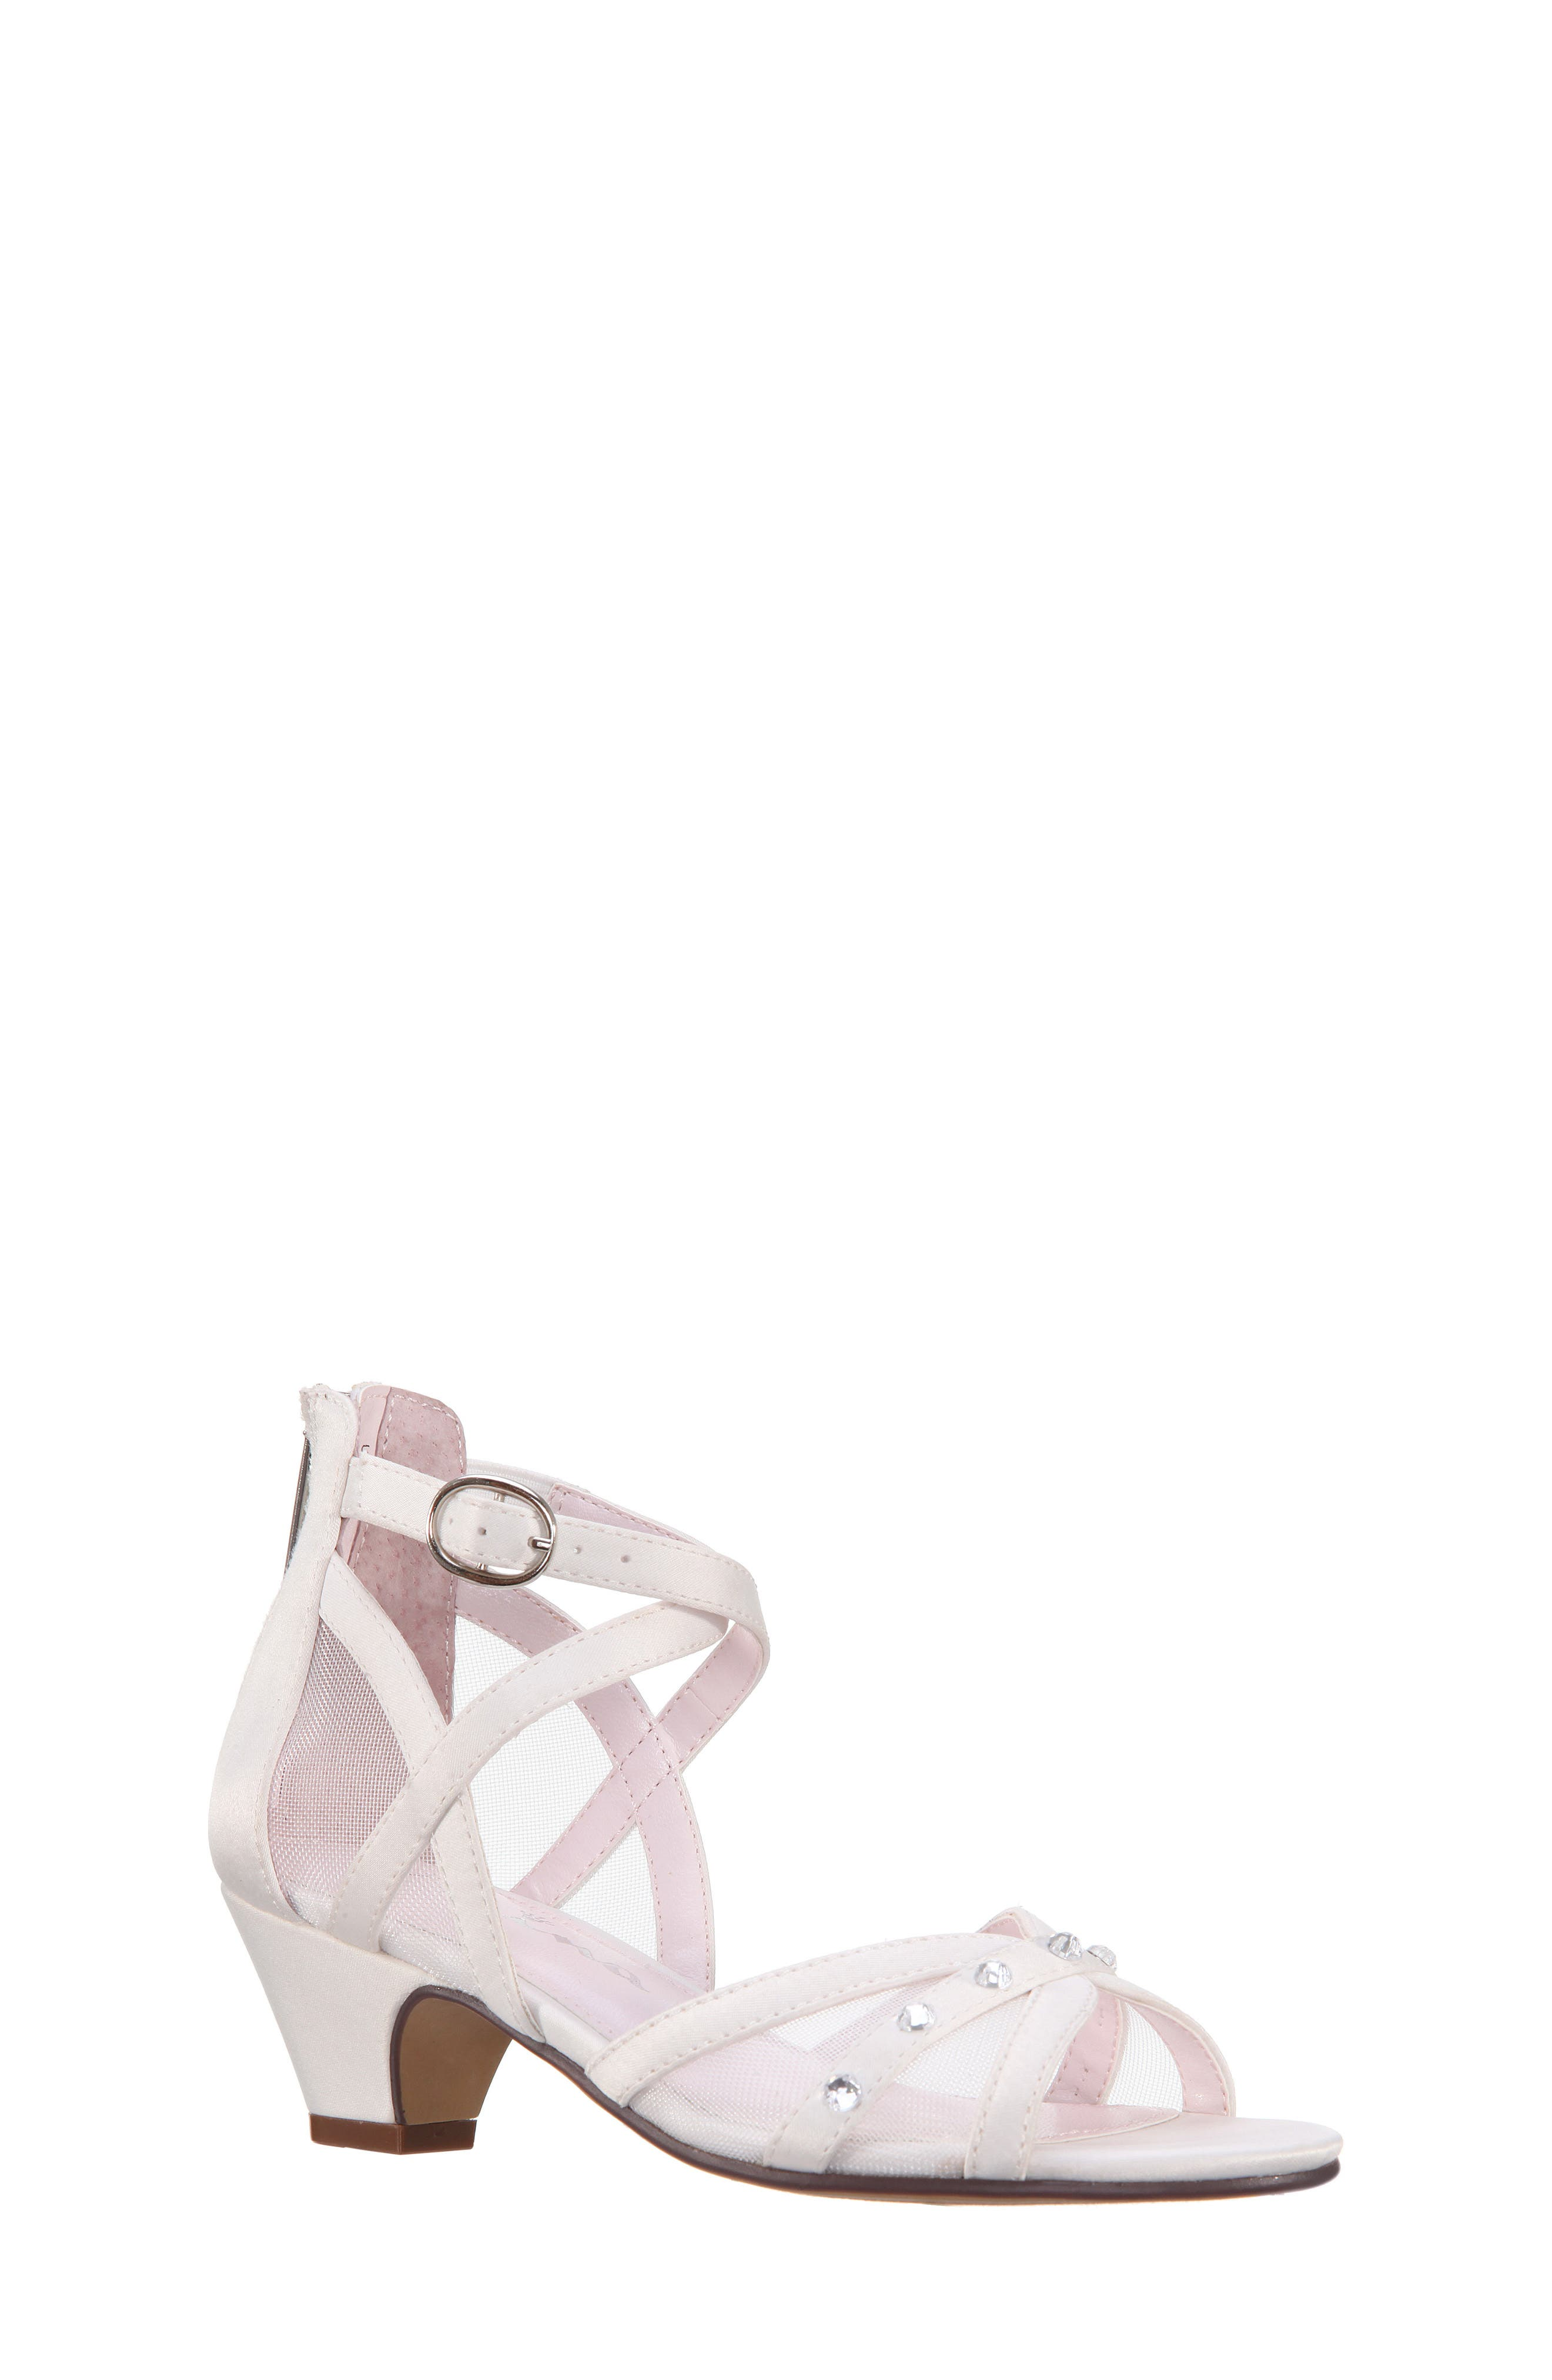 Betty Sandal,                         Main,                         color, White Shimmer Fabric